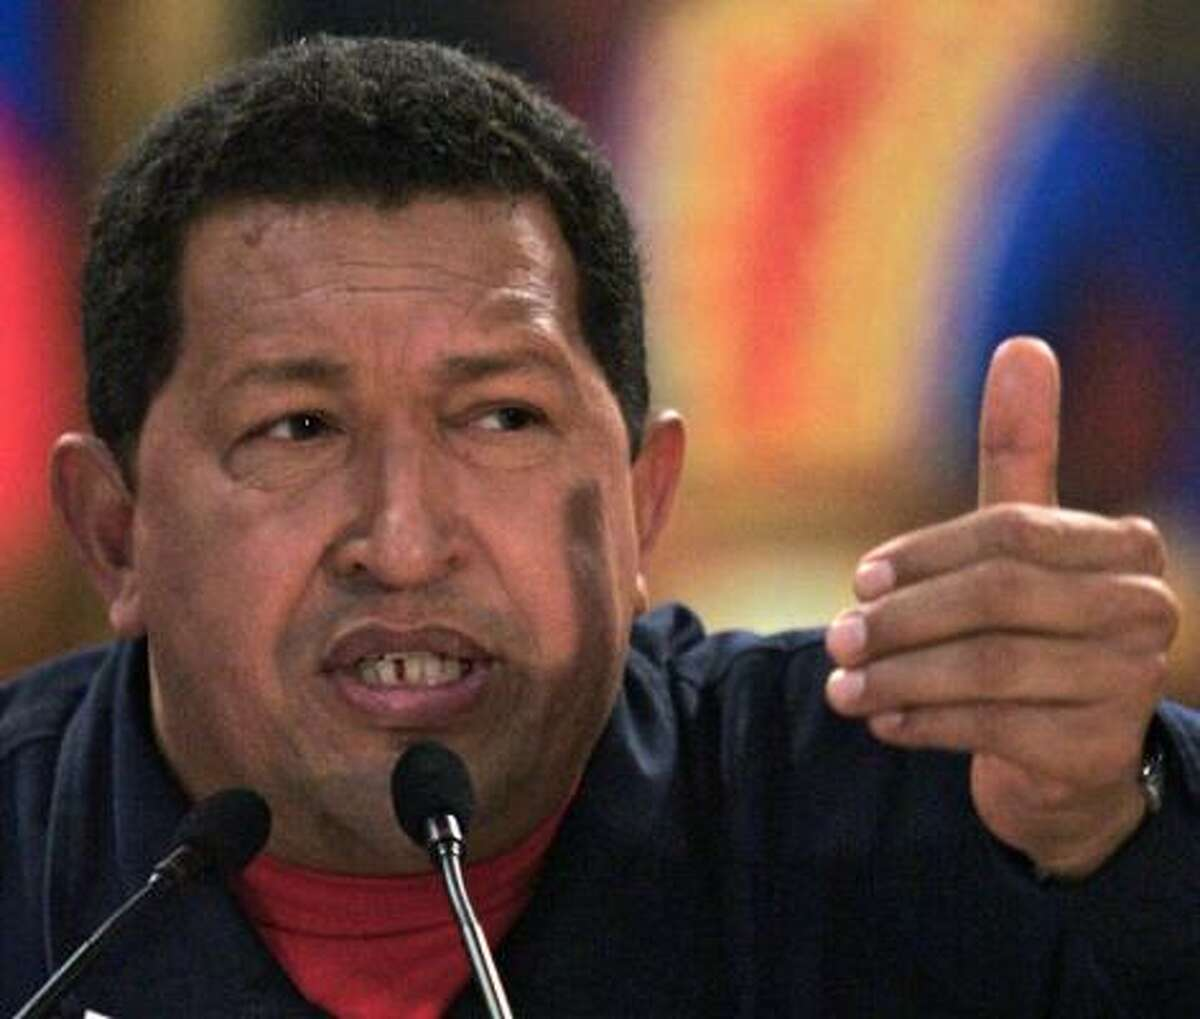 Hugo Chavez contends Washington is trying to stir up violence against his regime.